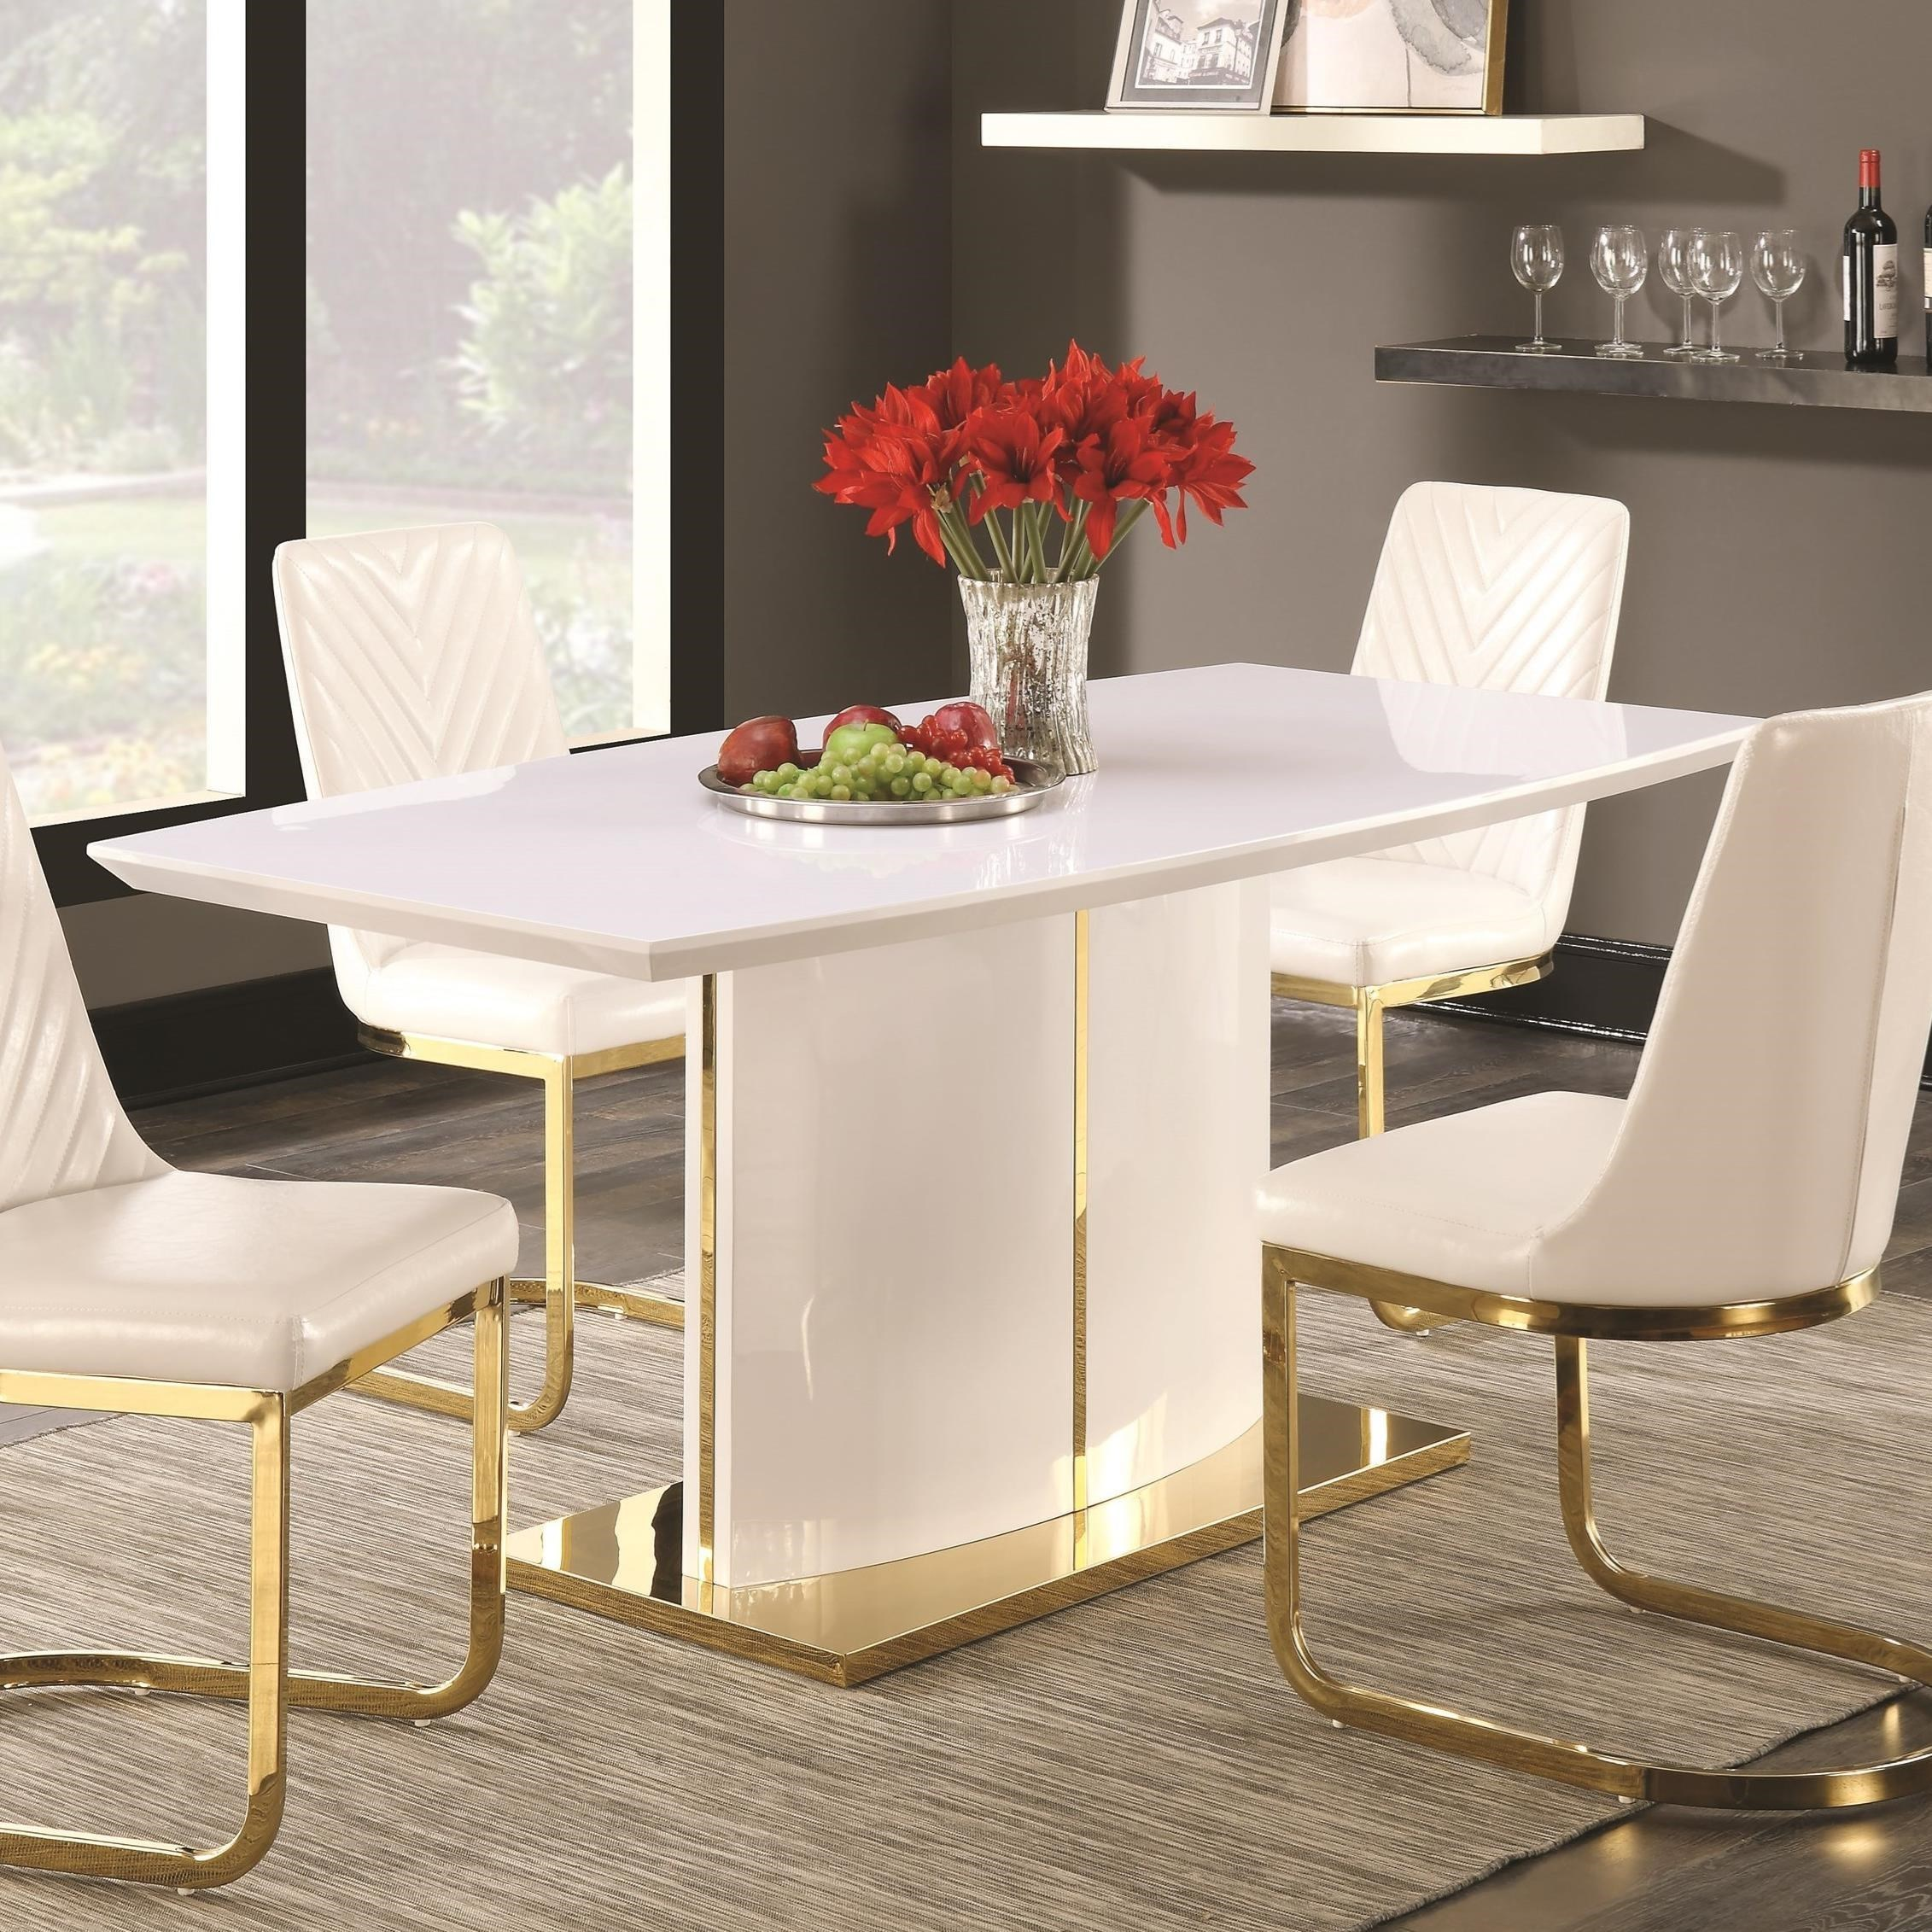 White And Gold Dining Table Set, White And Gold Dining Room Set